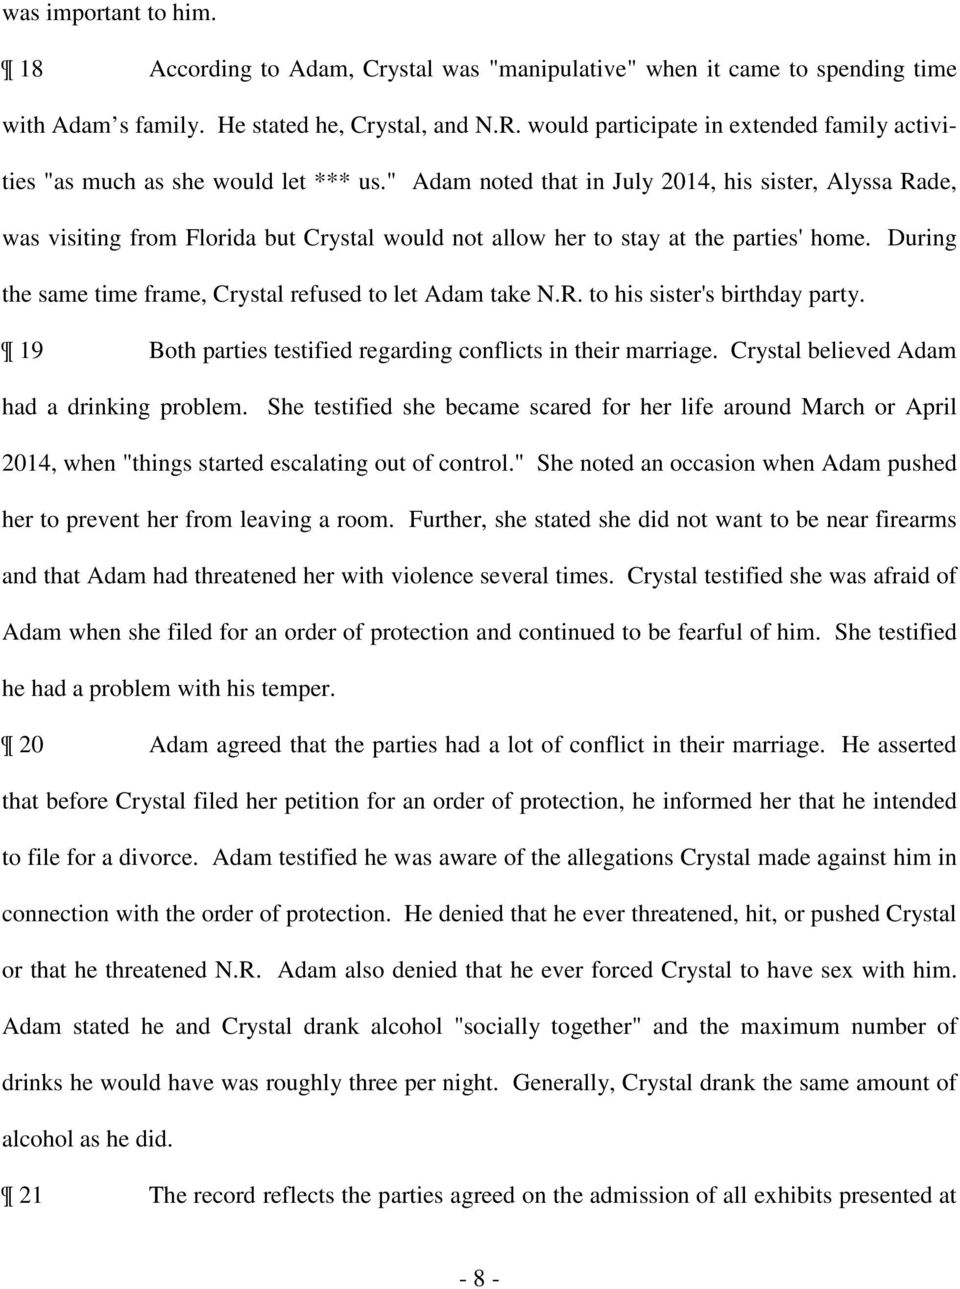 """ Adam noted that in July 2014, his sister, Alyssa Rade, was visiting from Florida but Crystal would not allow her to stay at the parties' home."